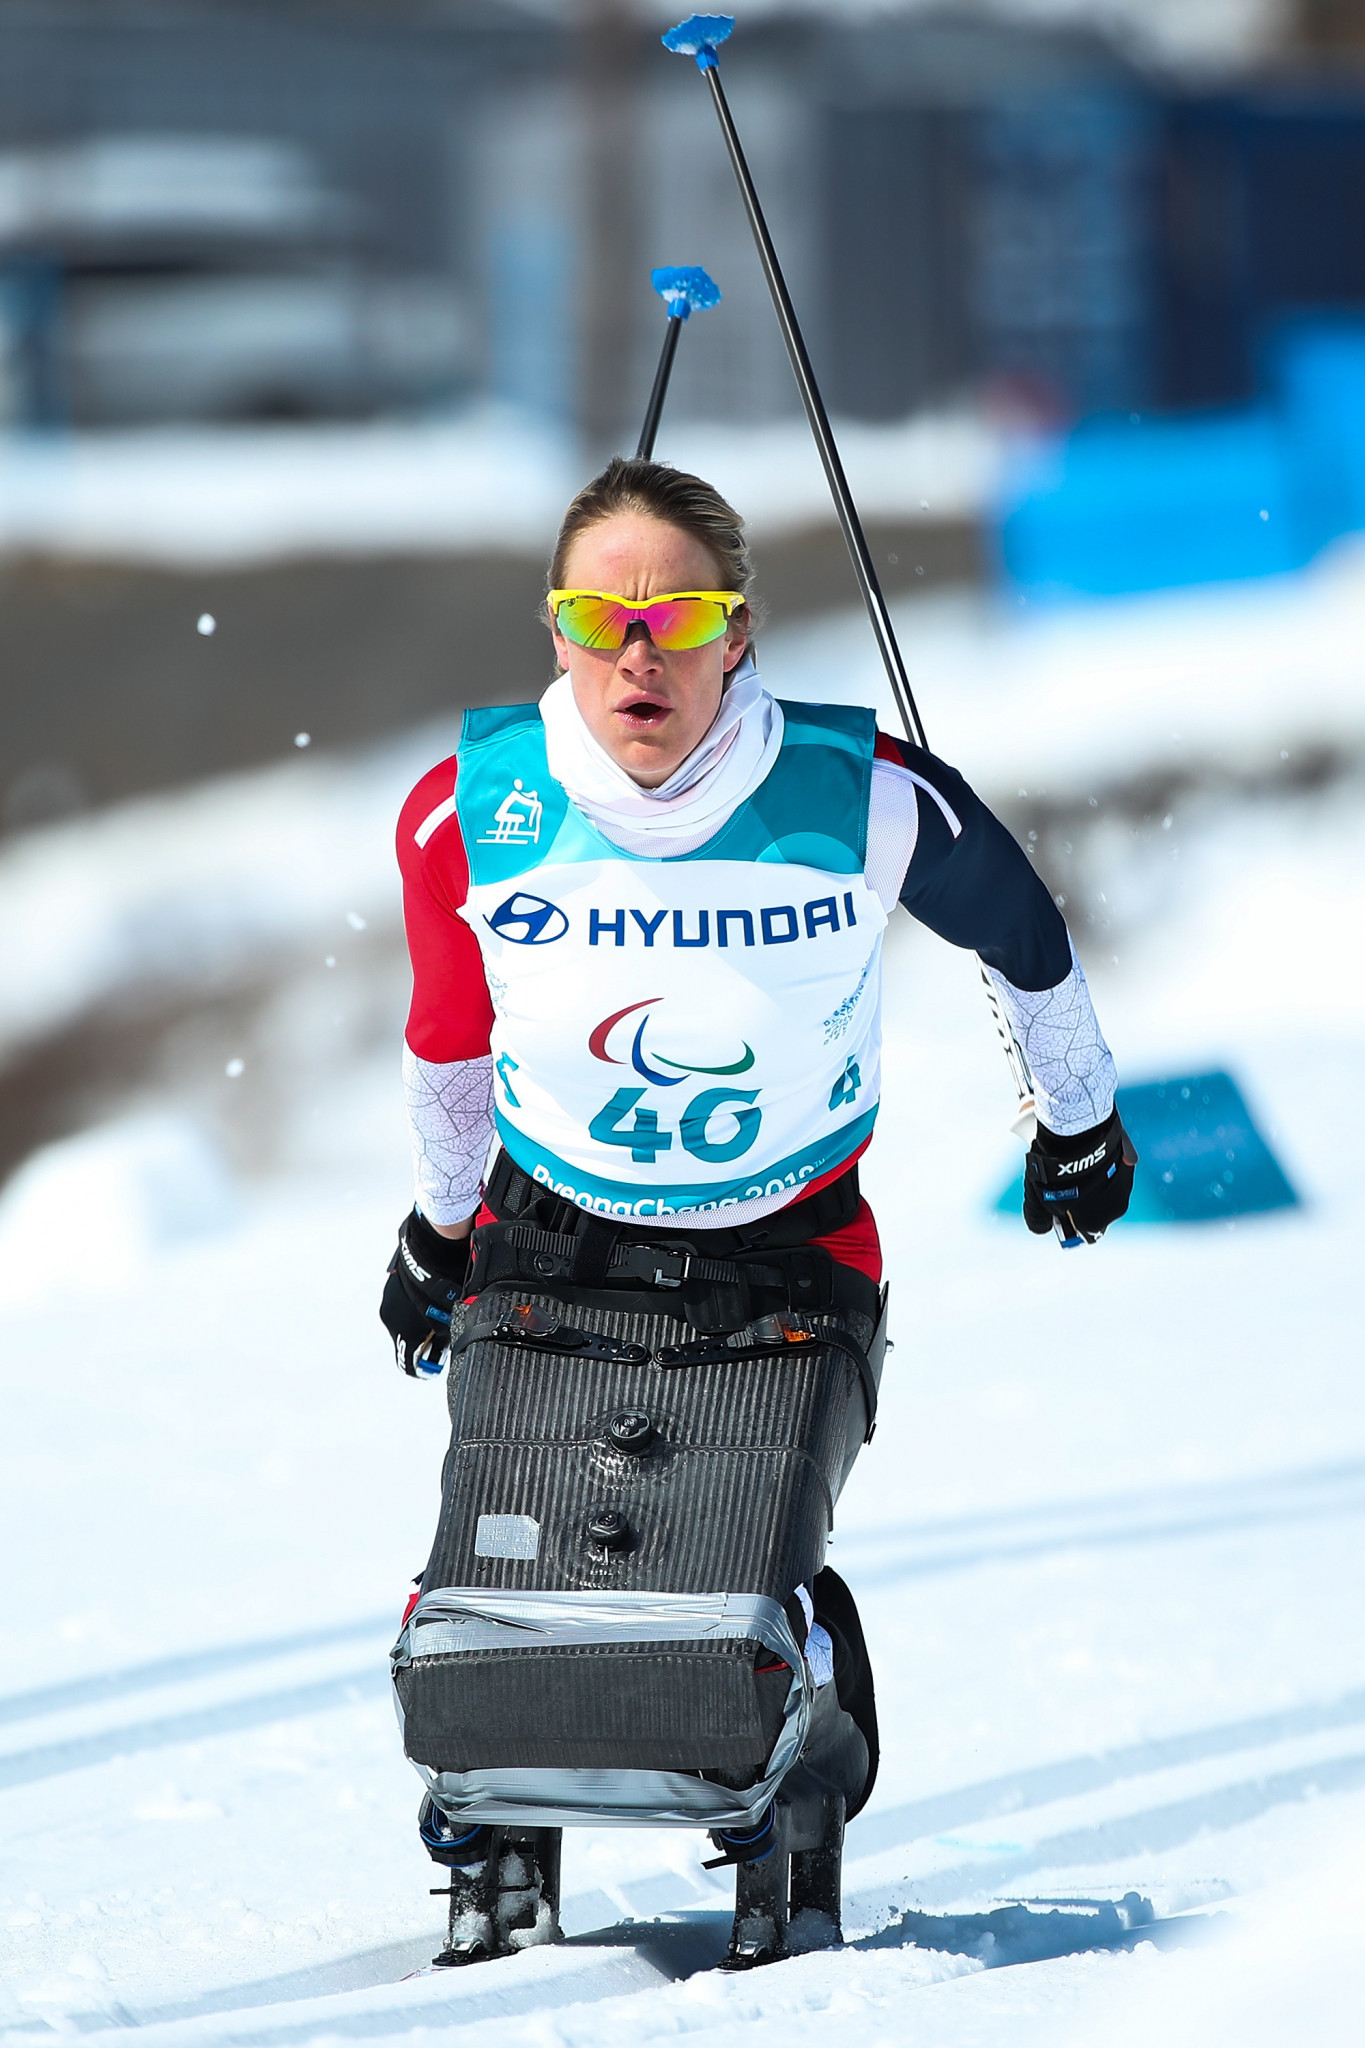 Norway's Birgit Skarstein won a second gold at the World Para Nordic Skiing World Cup in Finland ©Getty Images